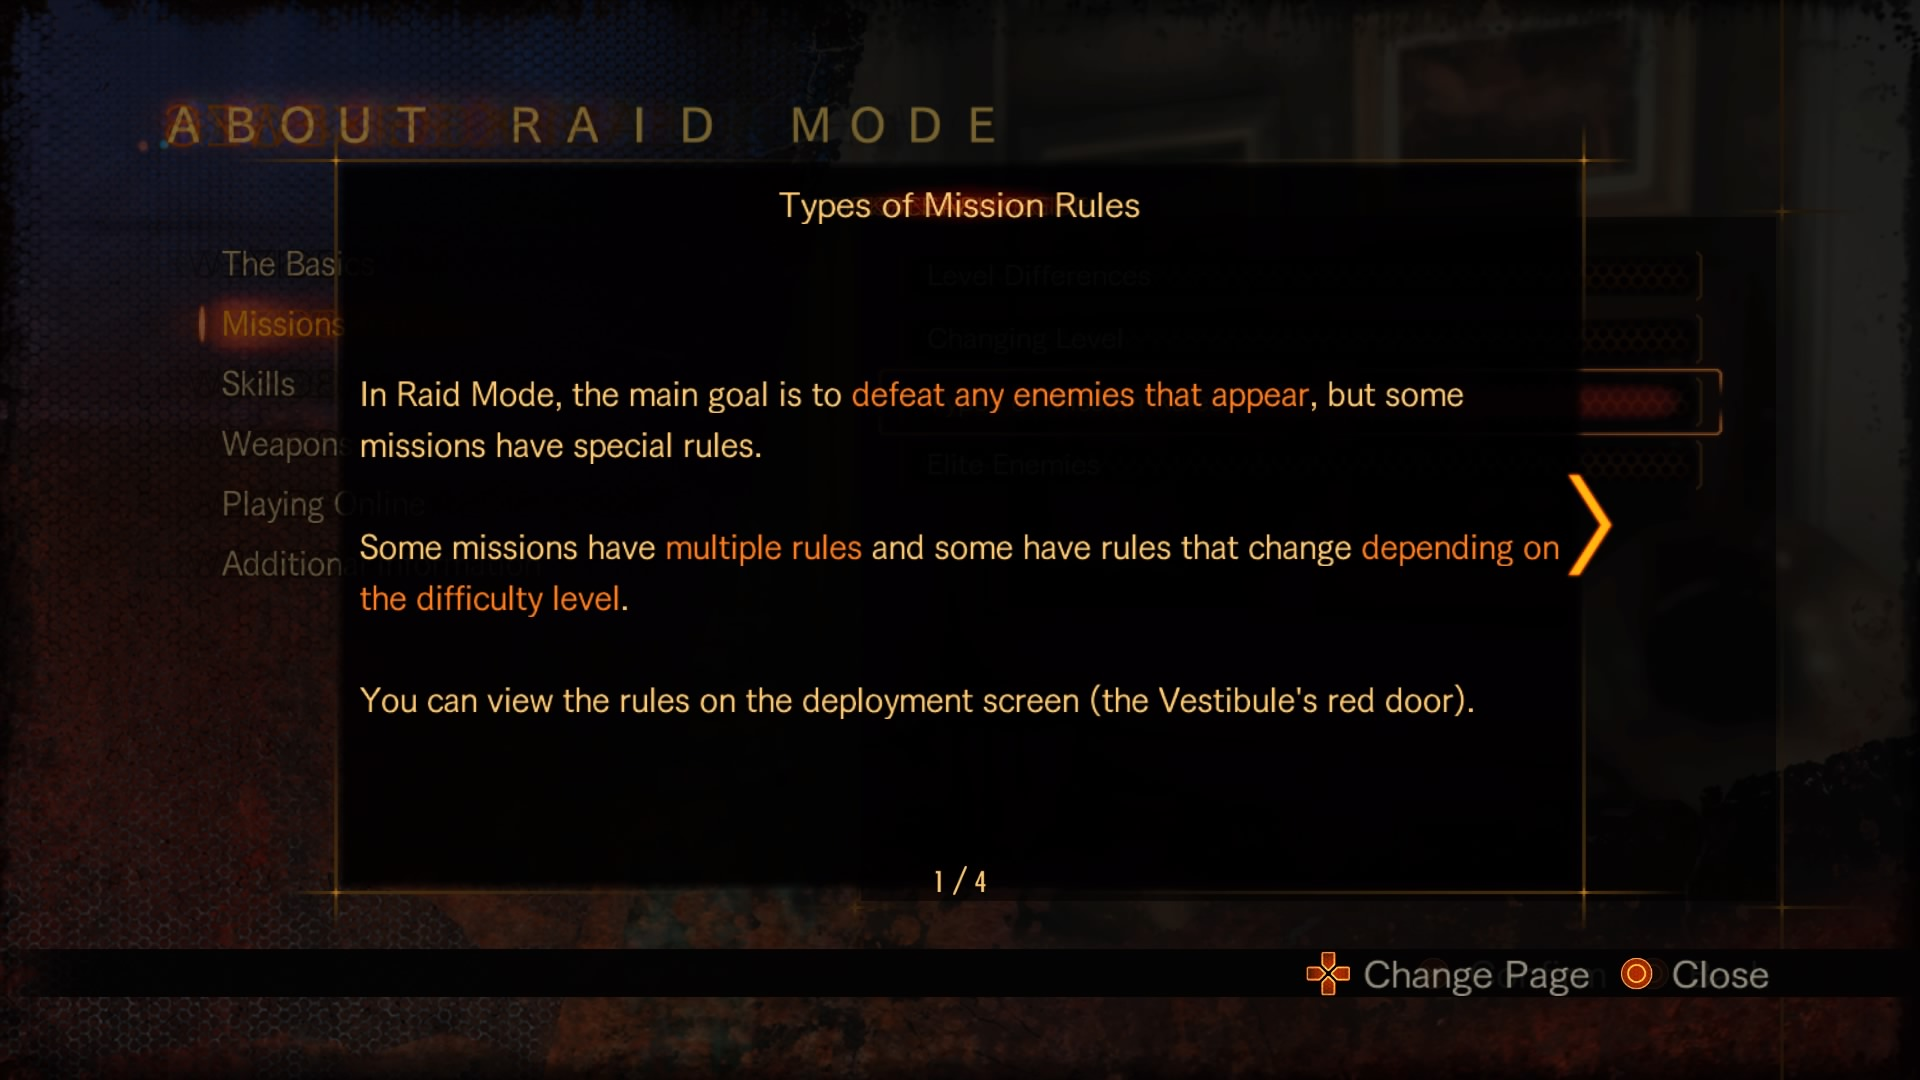 Types of Mission Rules